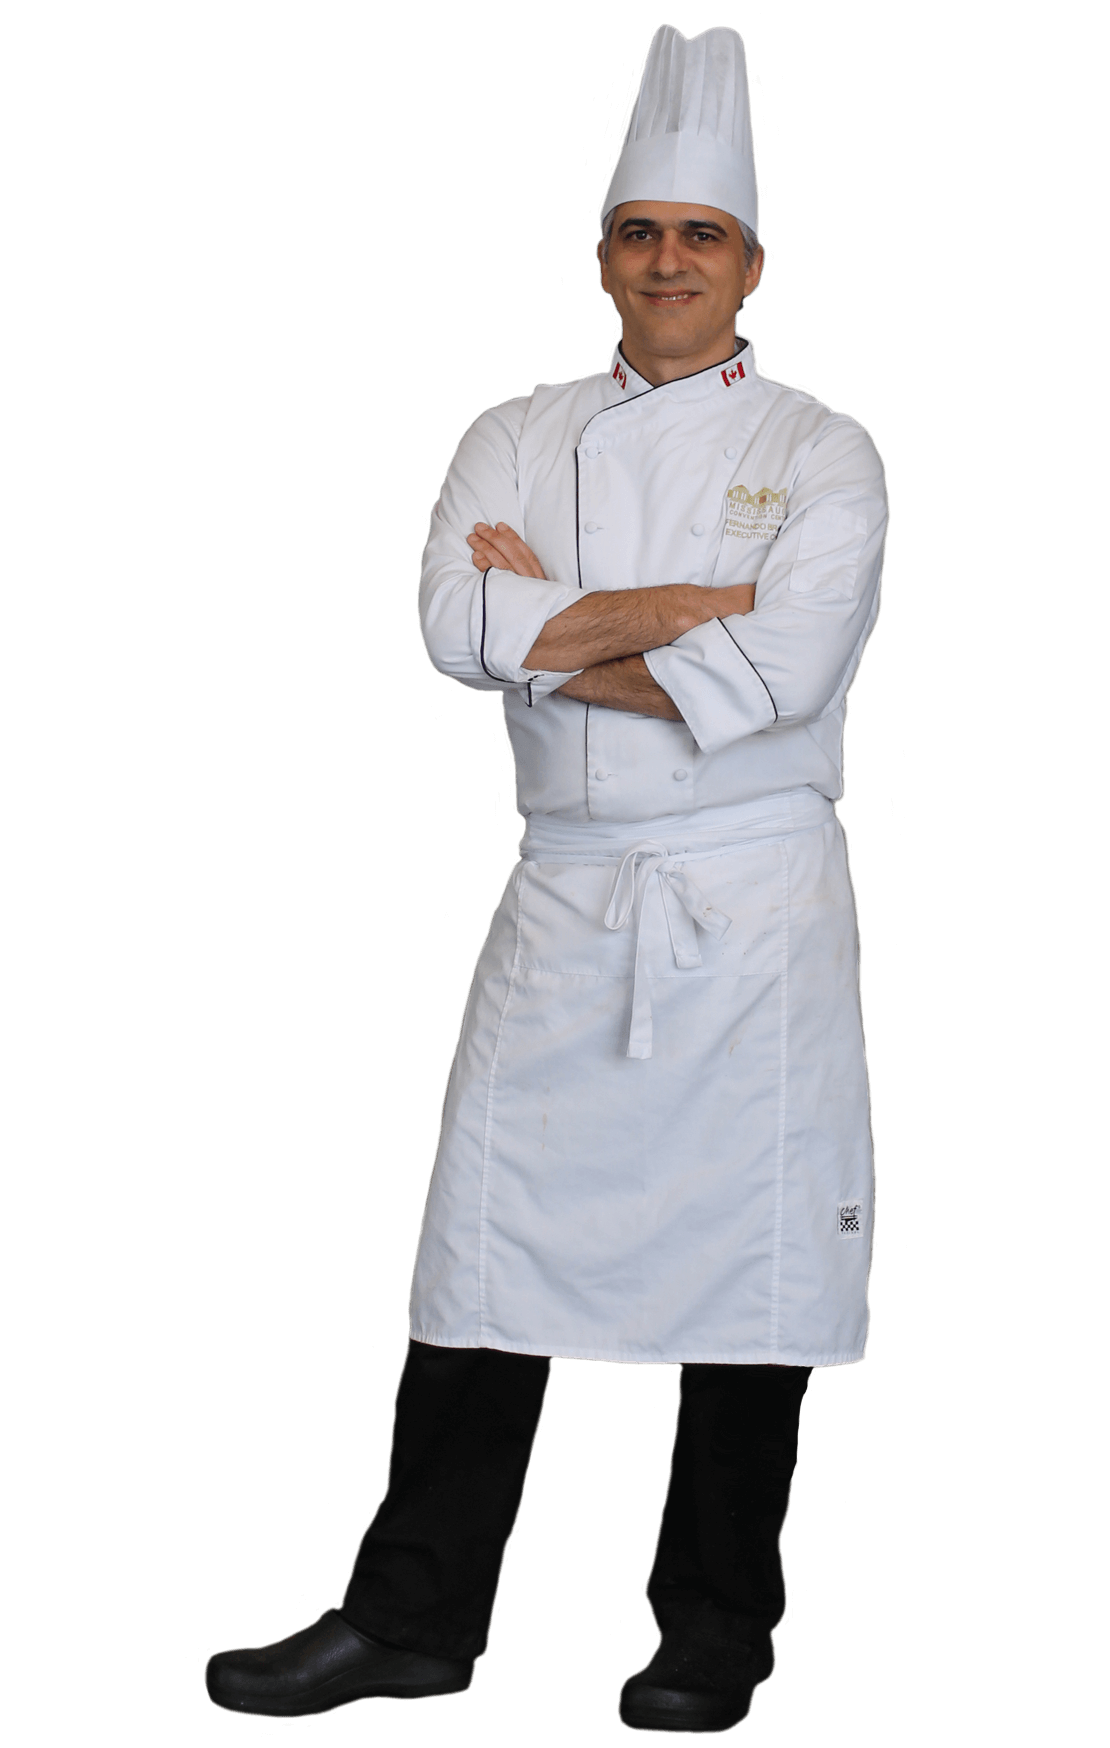 Png images free download. Chef clipart executive chef